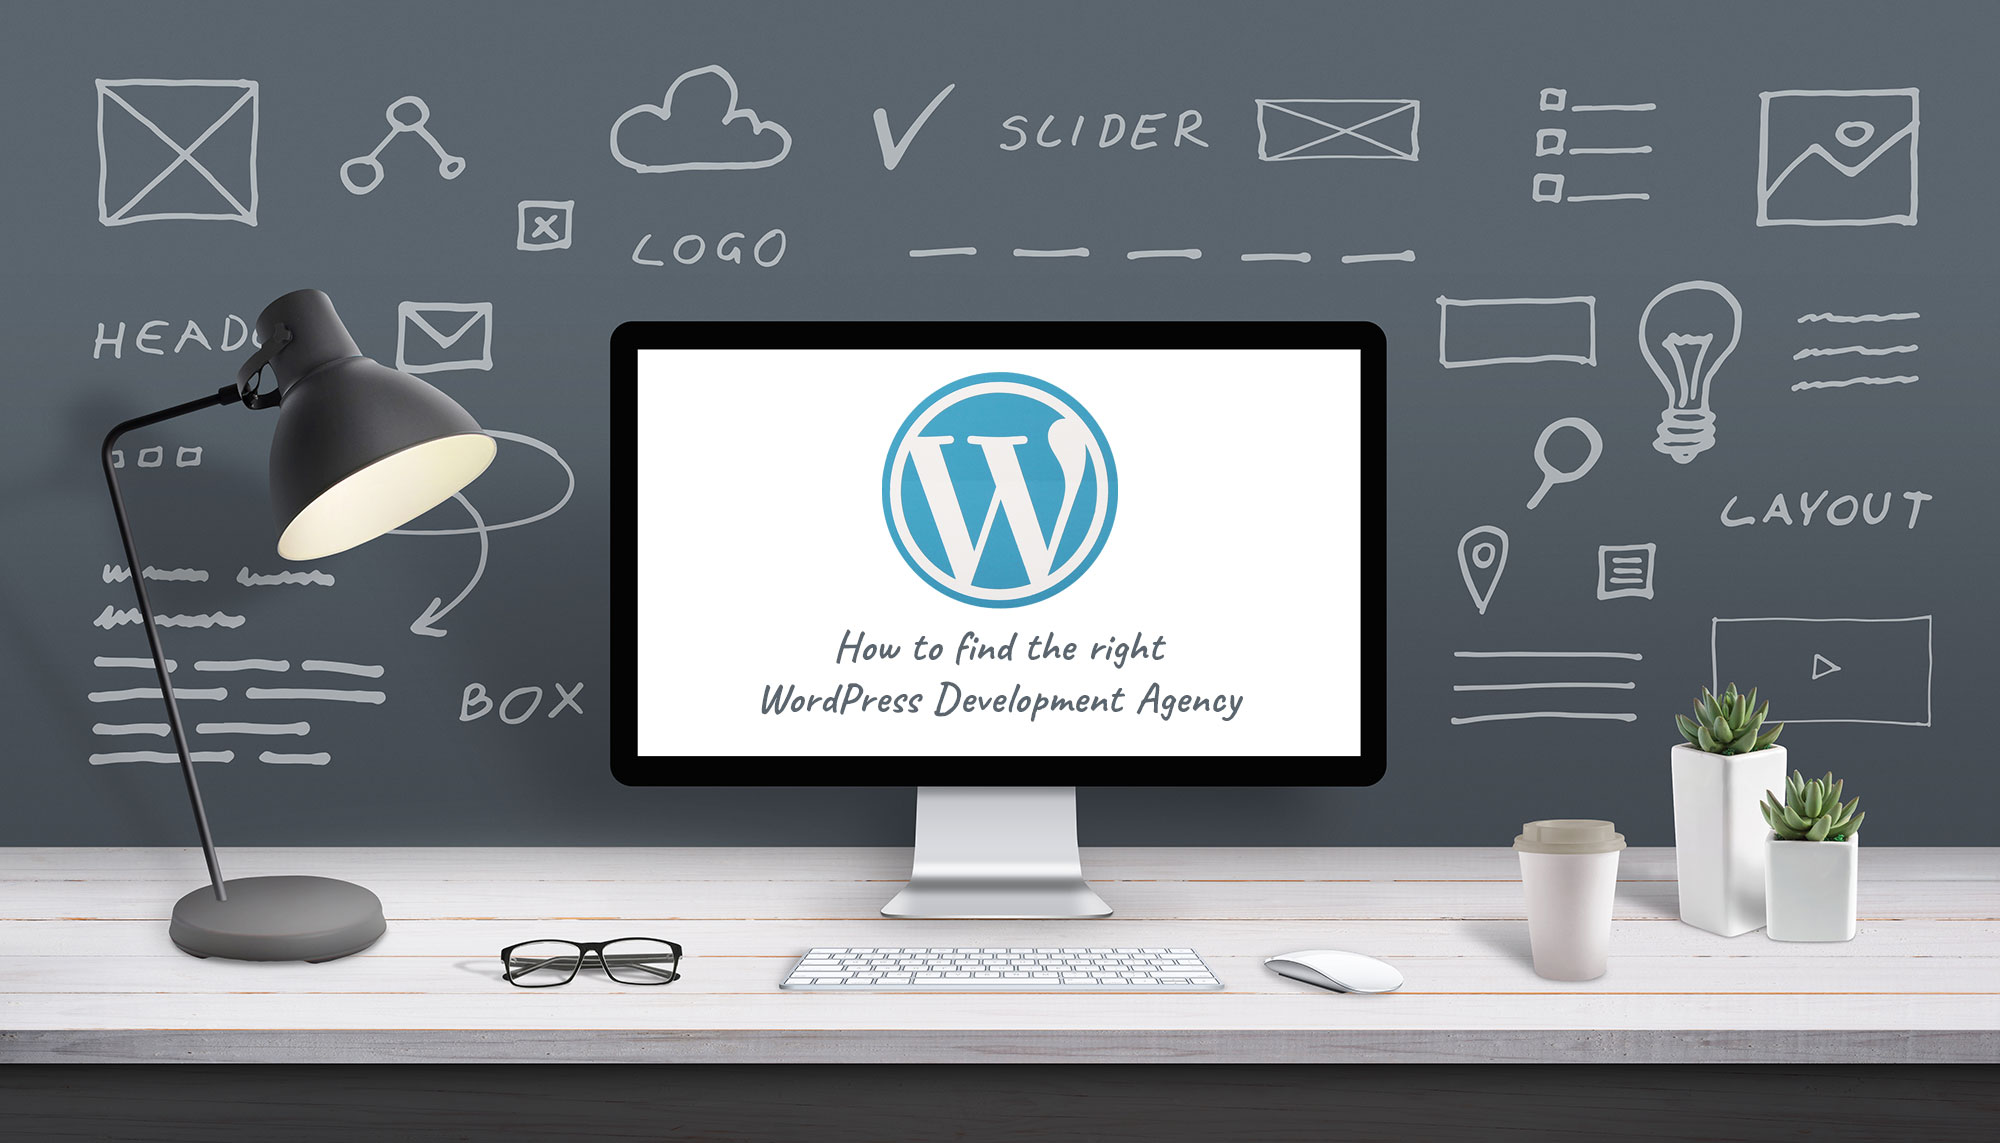 How to find the right WordPress Development Agency